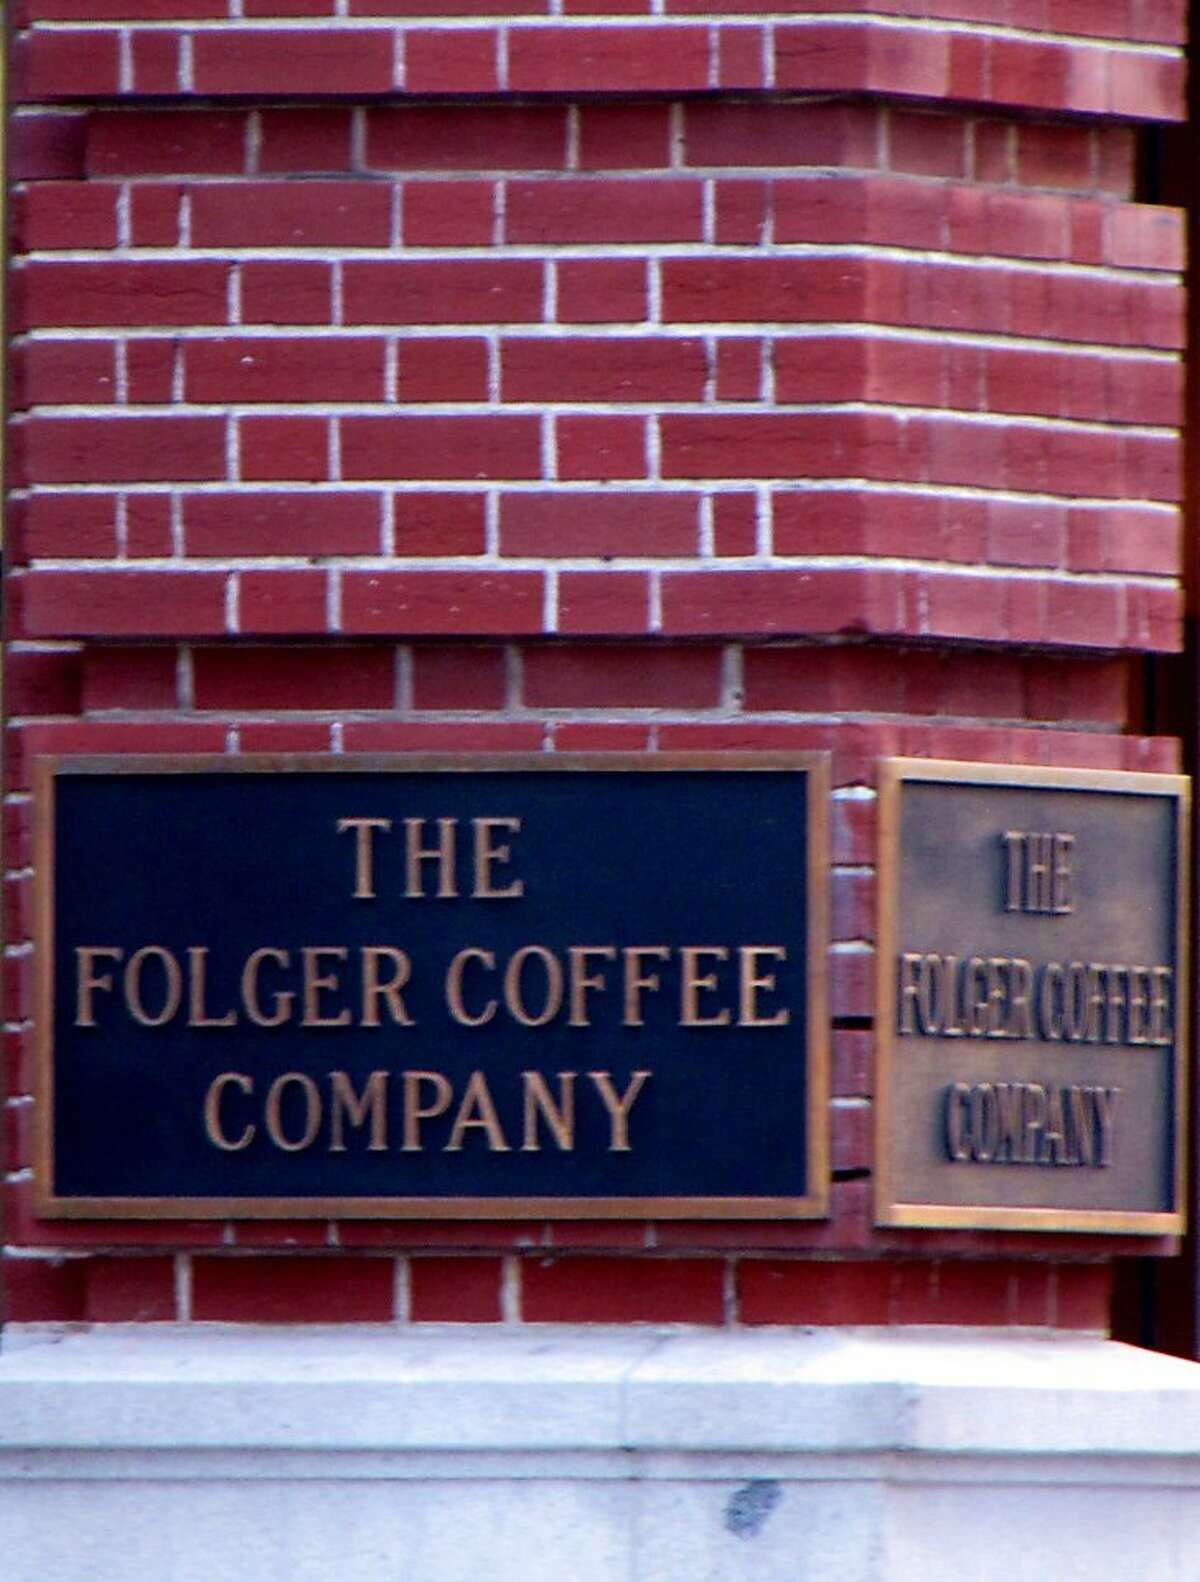 The Folger Coffee Company building was purchased by J.A. Folger in 1872.